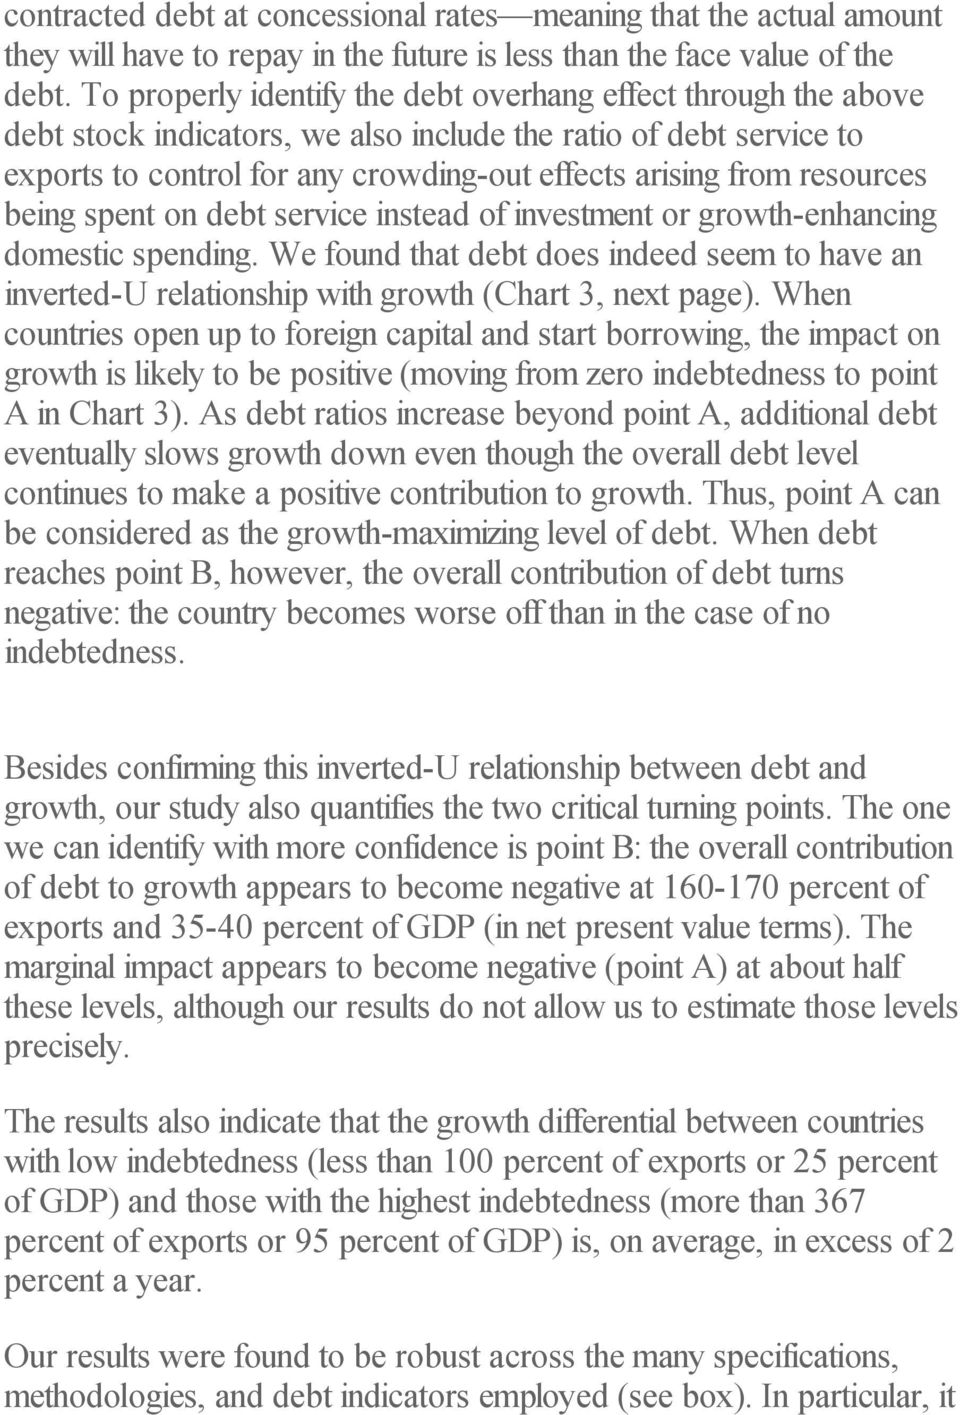 resources being spent on debt service instead of investment or growth-enhancing domestic spending.